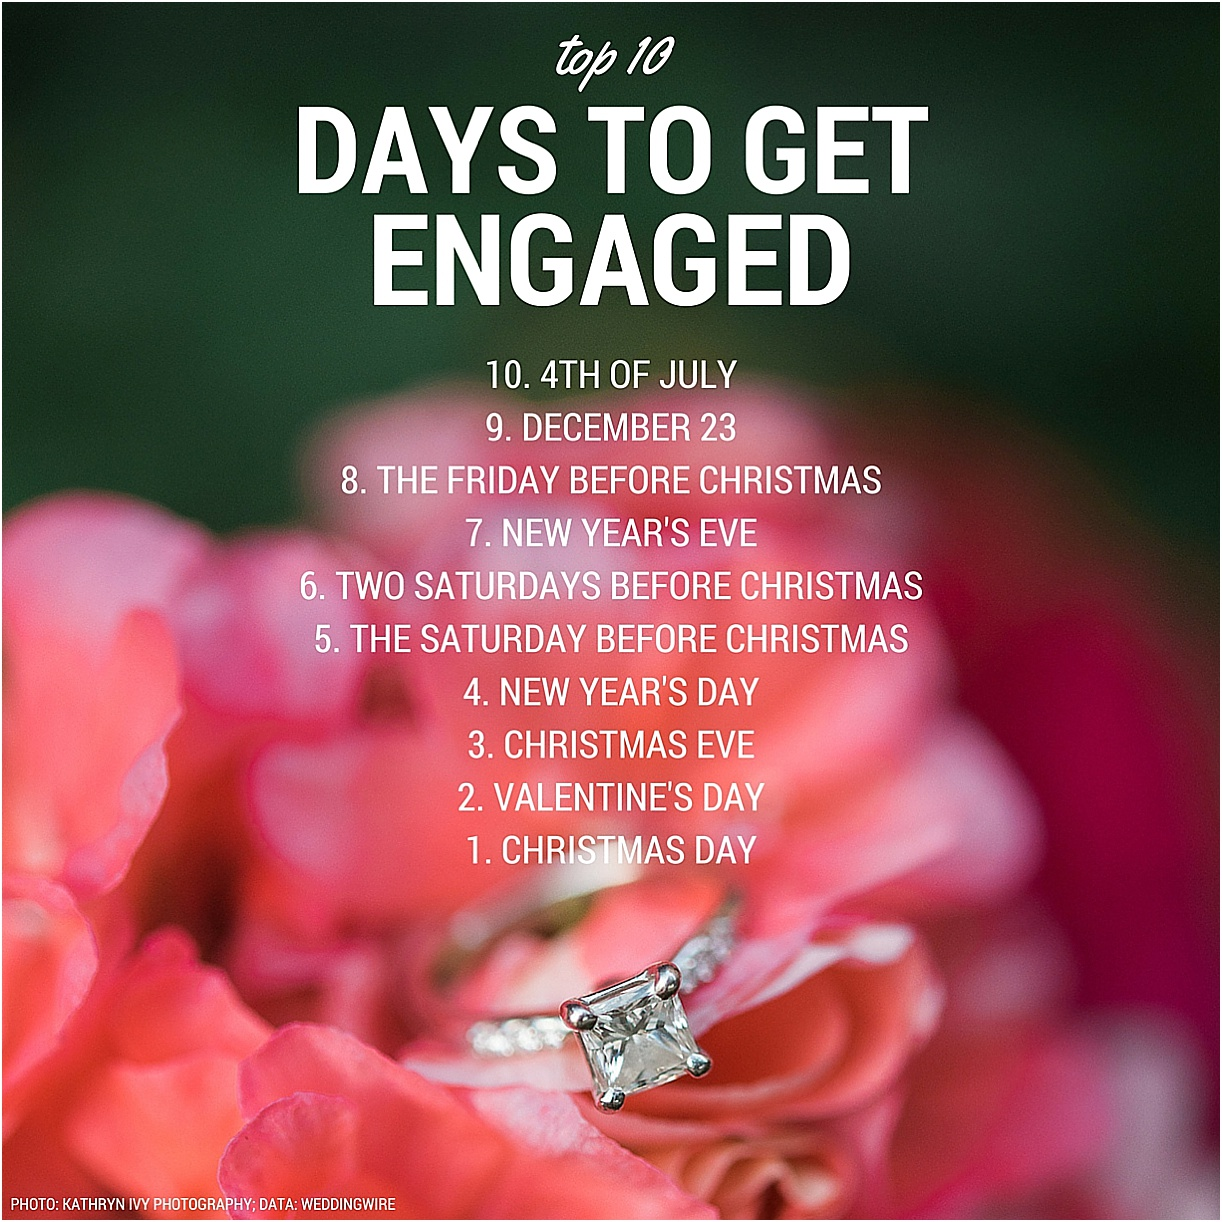 Top 10 Days to Get Engaged » Hill City Bride